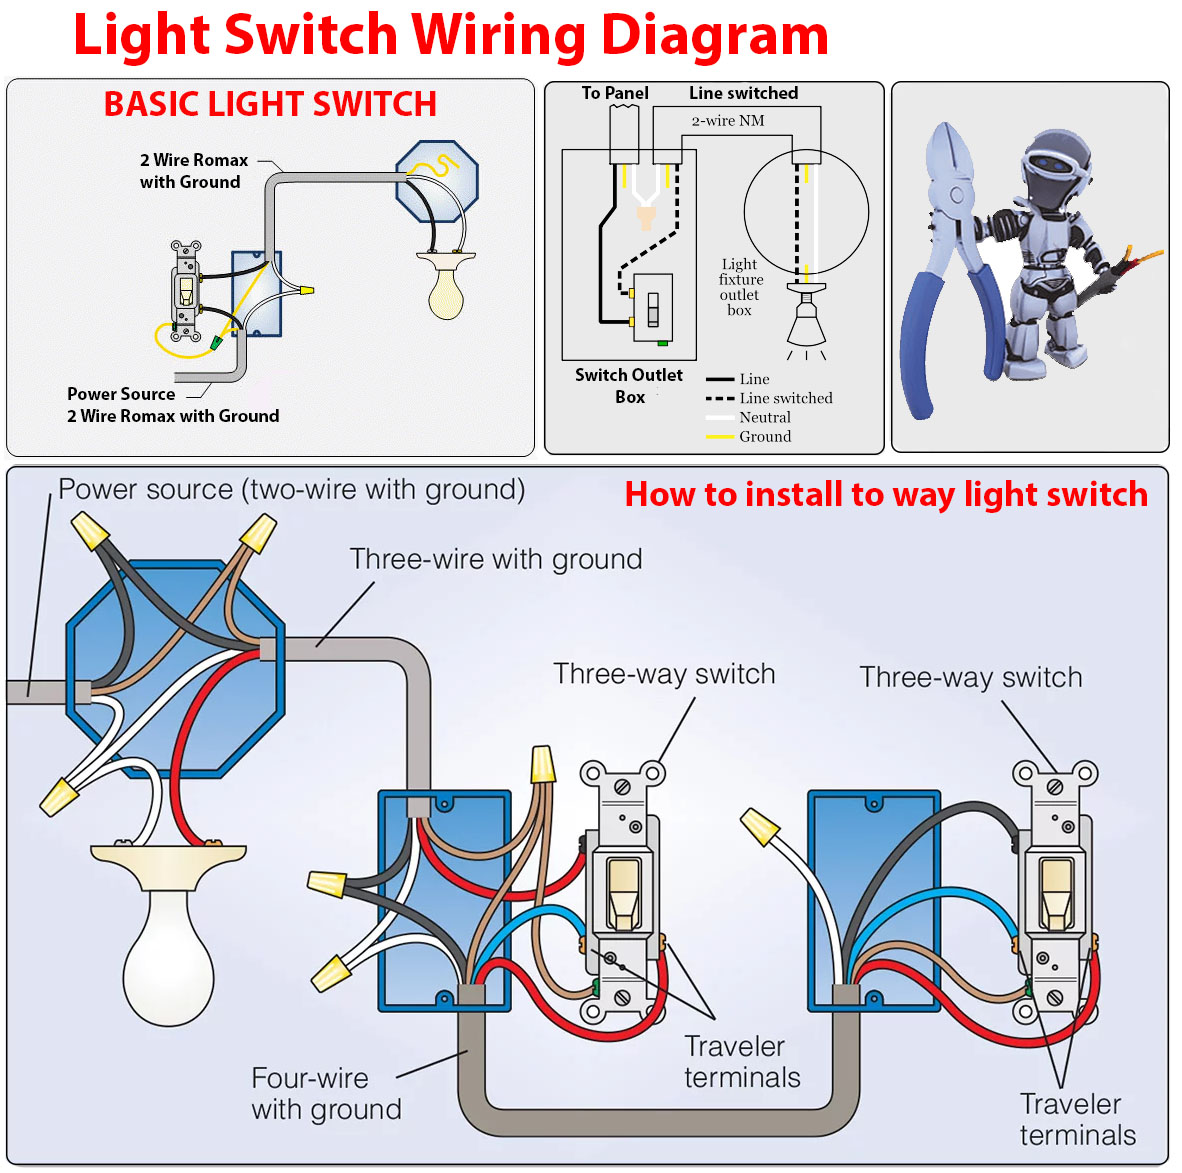 Wiring Diagram Light Switch Schematic